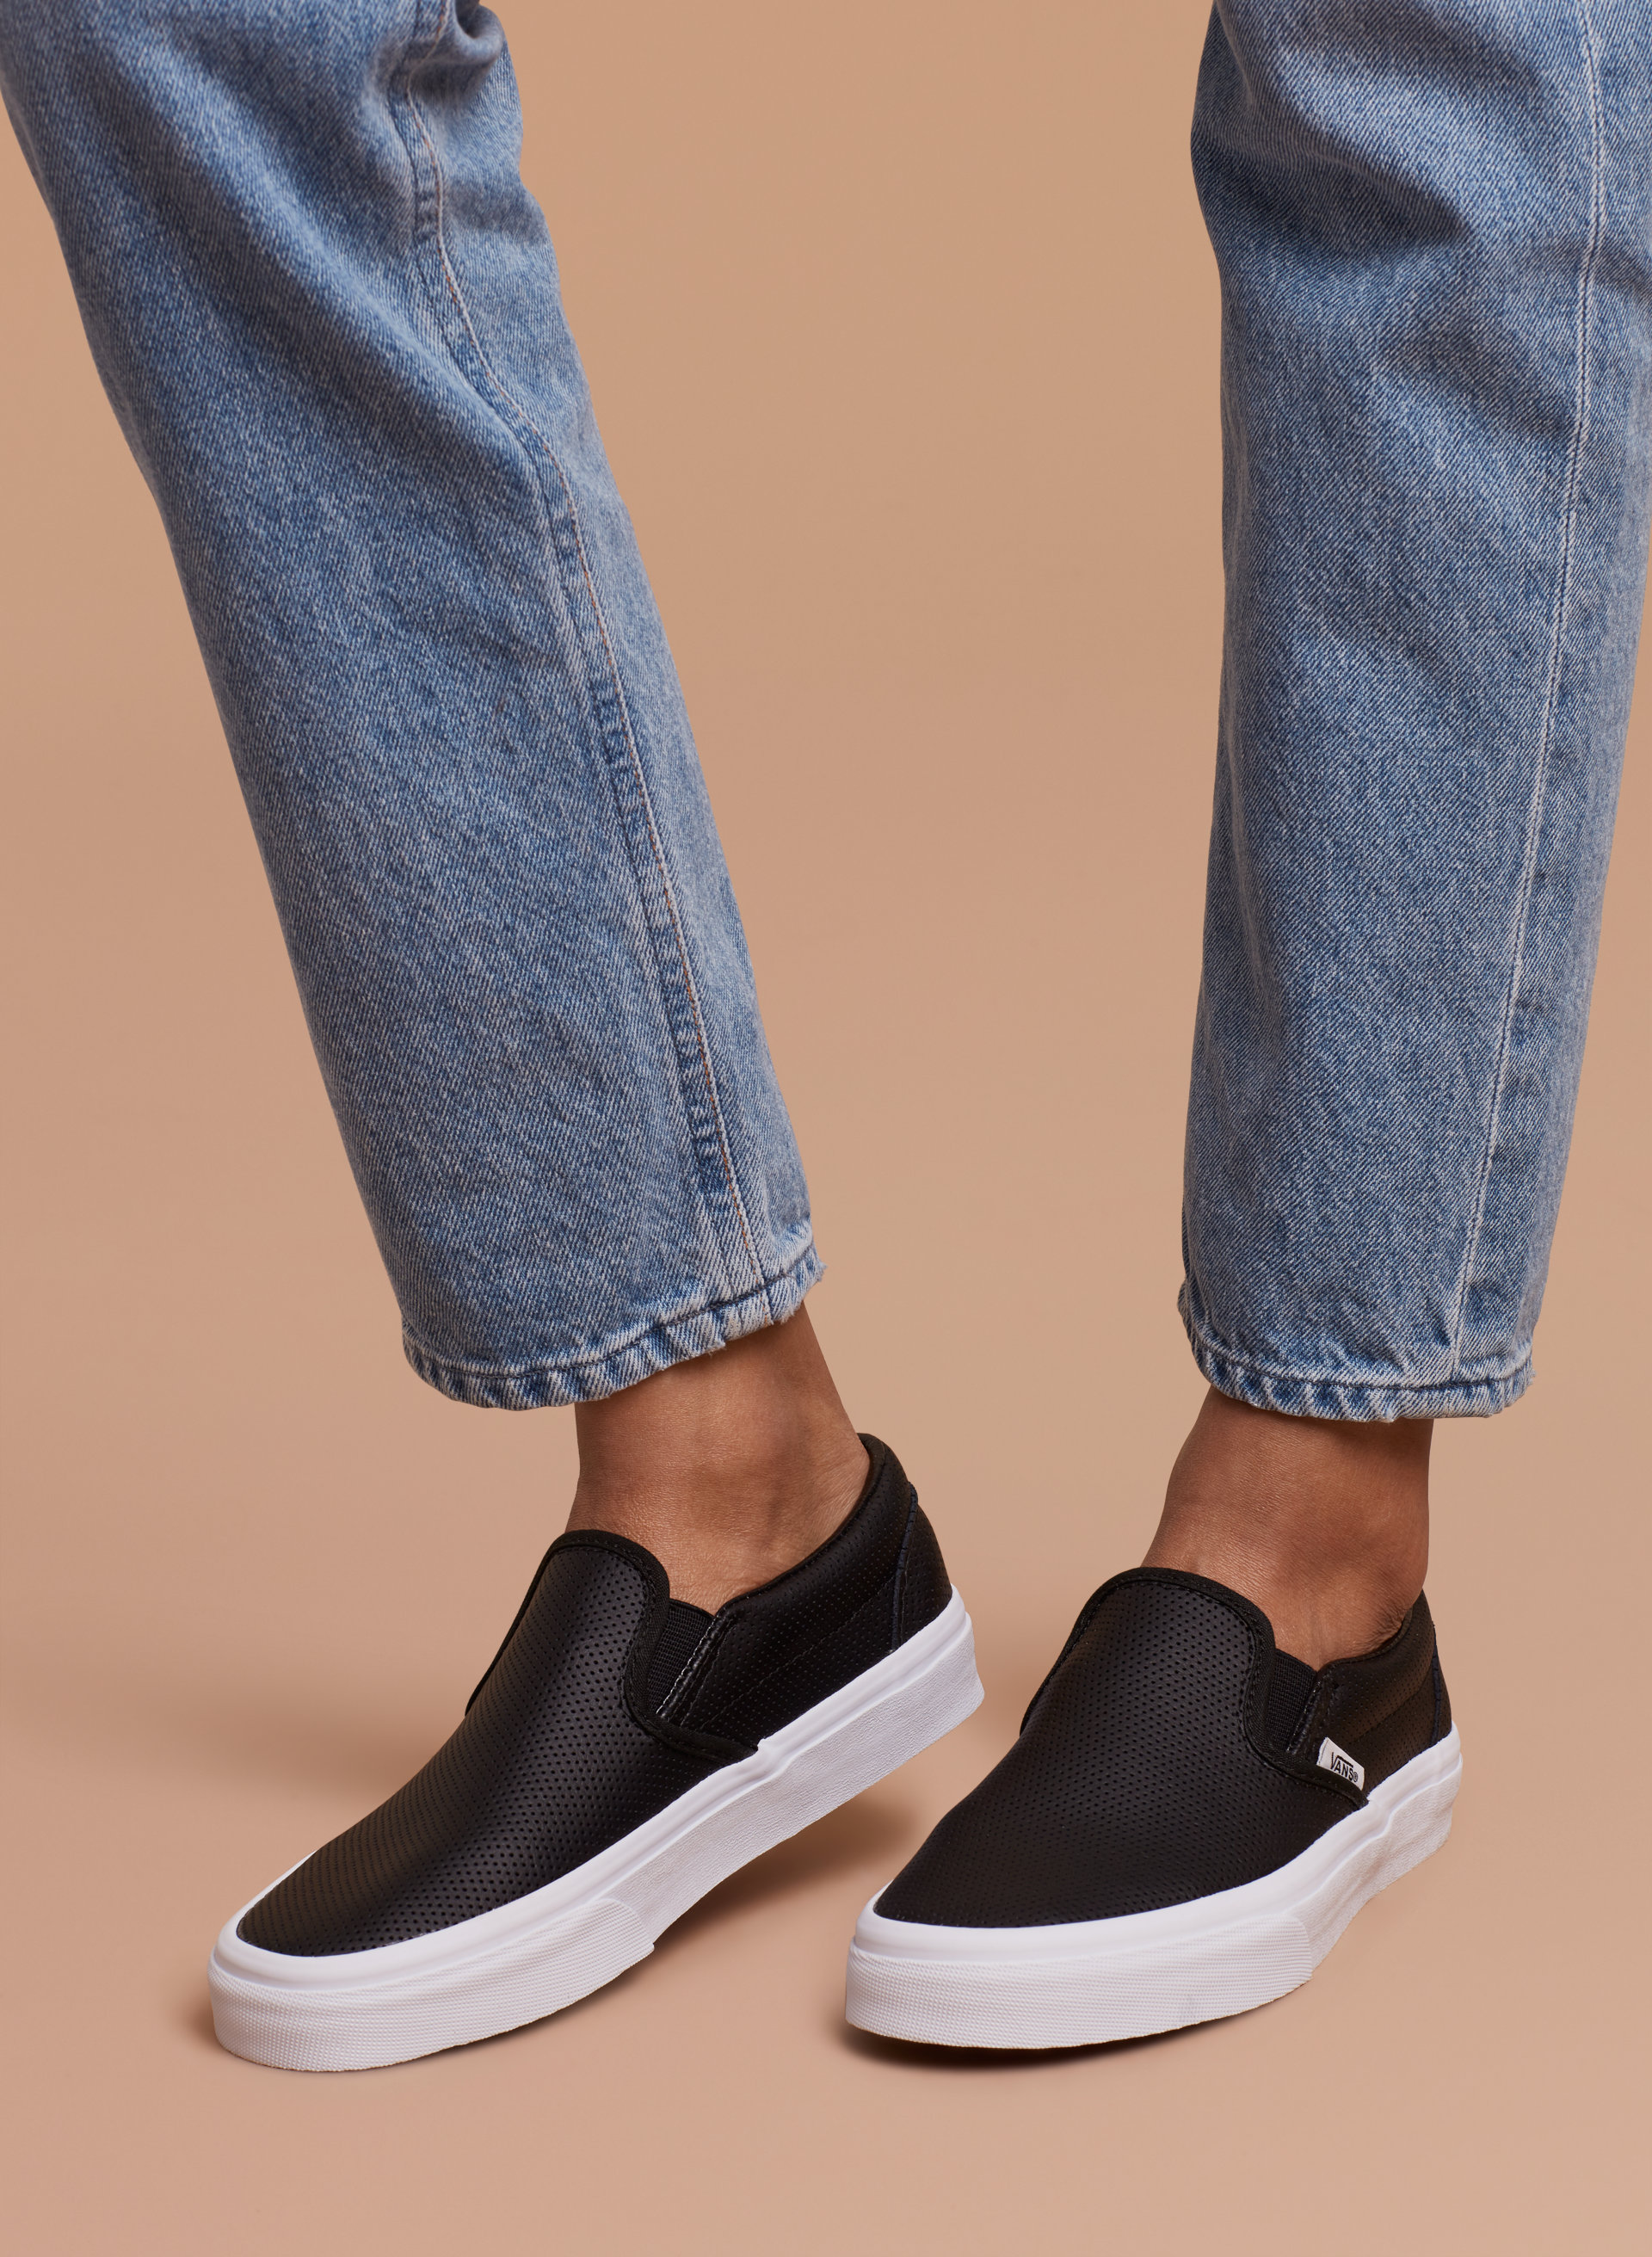 269924056e Buy 2 OFF ANY vans perf leather slip on CASE AND GET 70% OFF!